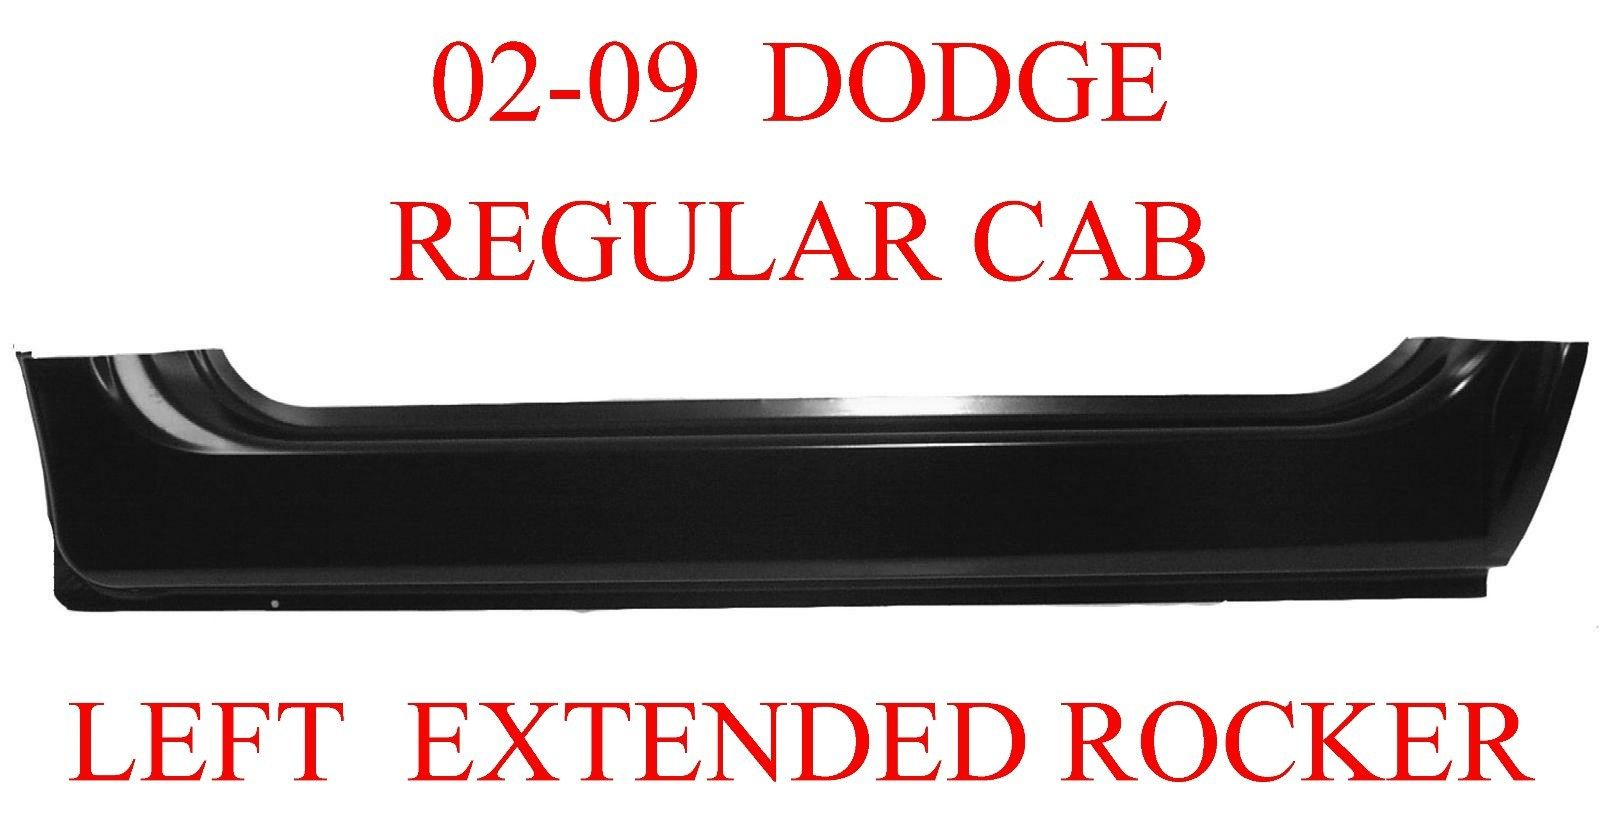 02-09 LEFT Dodge Extended Rocker Regular Cab Ram Truck